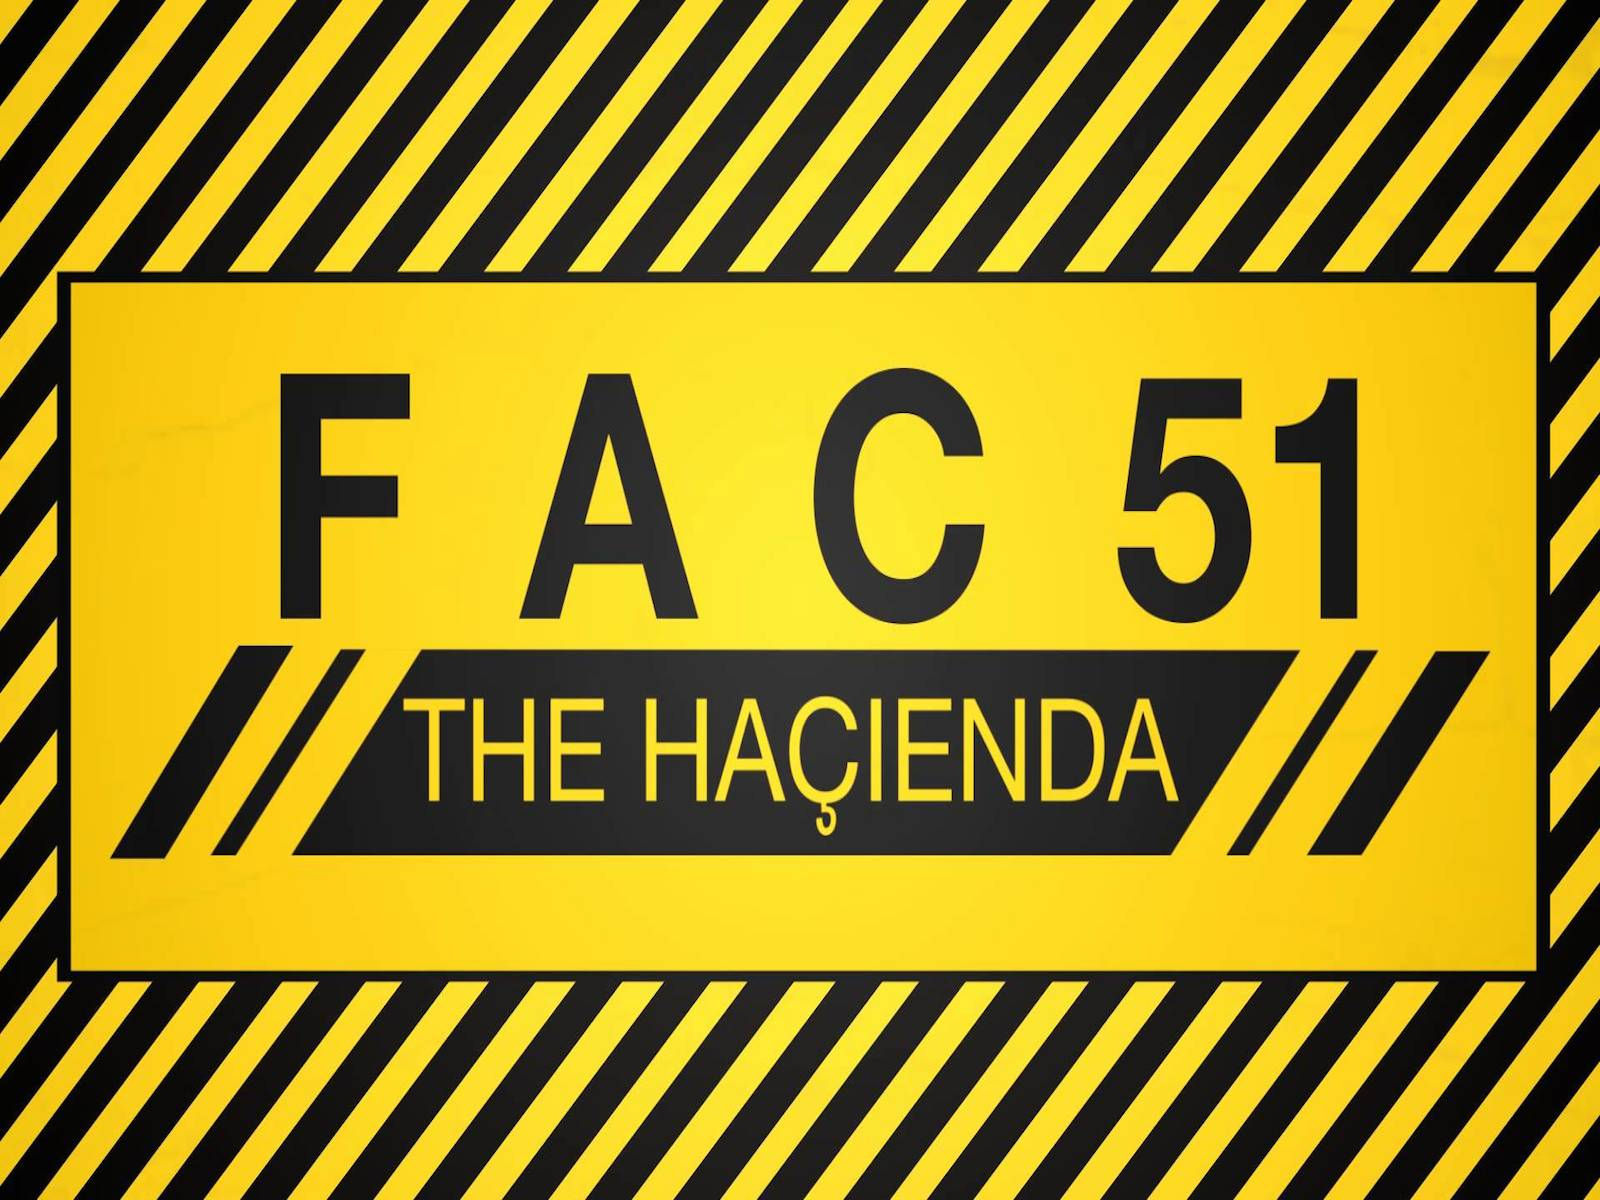 FAC 51 – THE HACIENDA